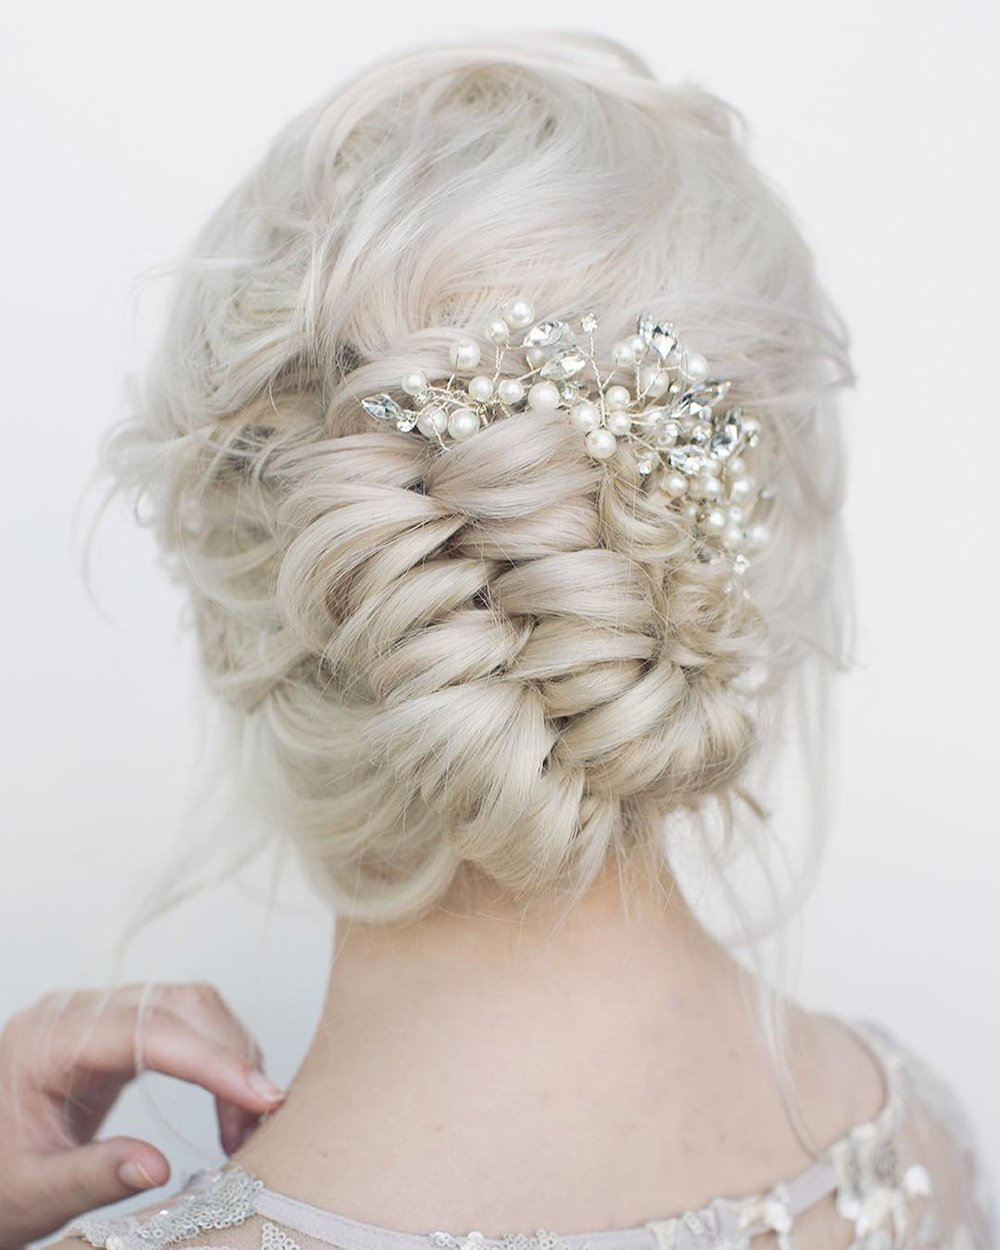 braid updo, wedding hair